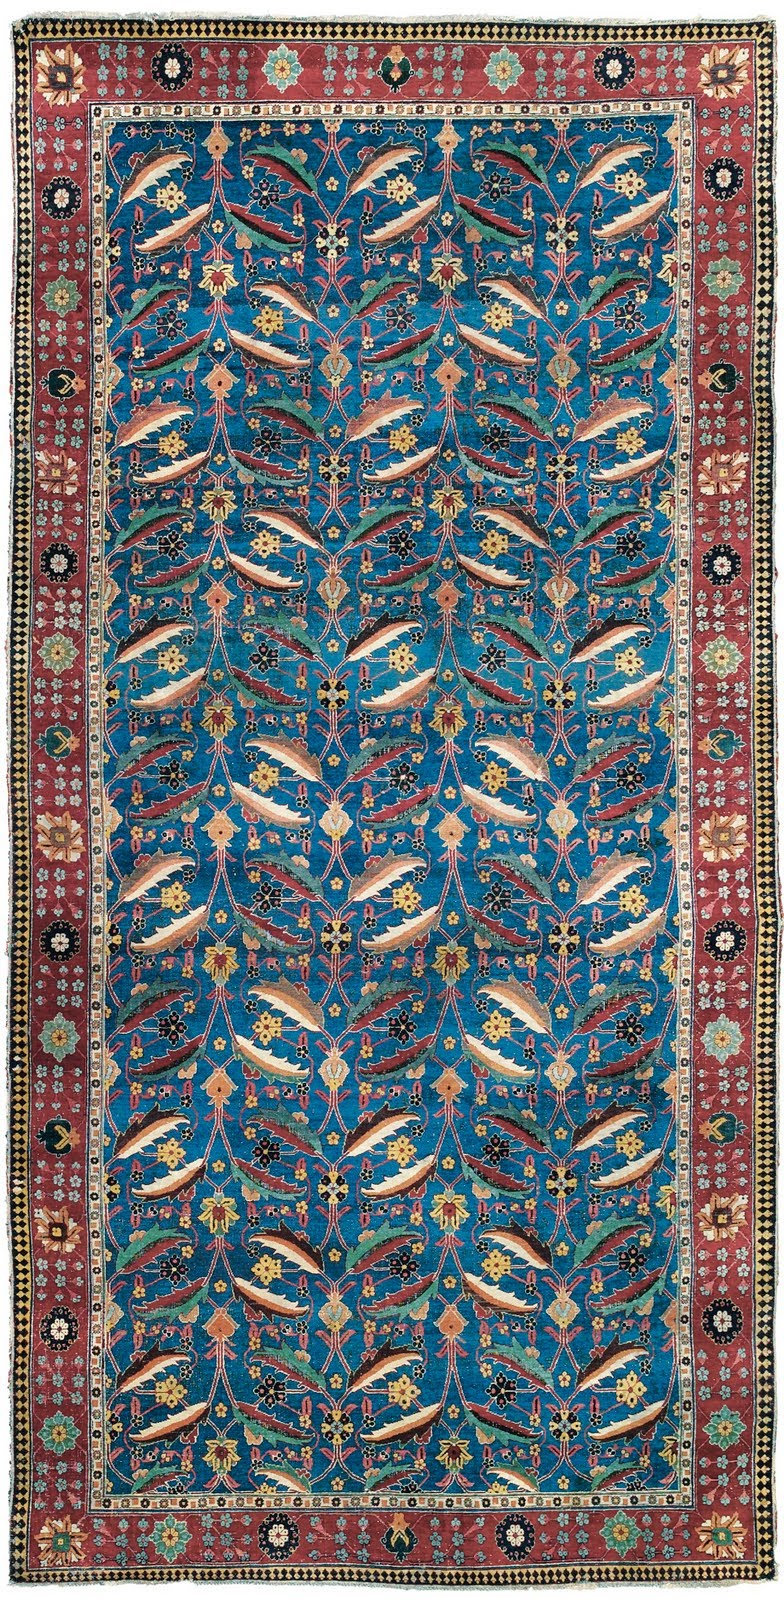 10 Million Persian Carpet Sets New Auction Record